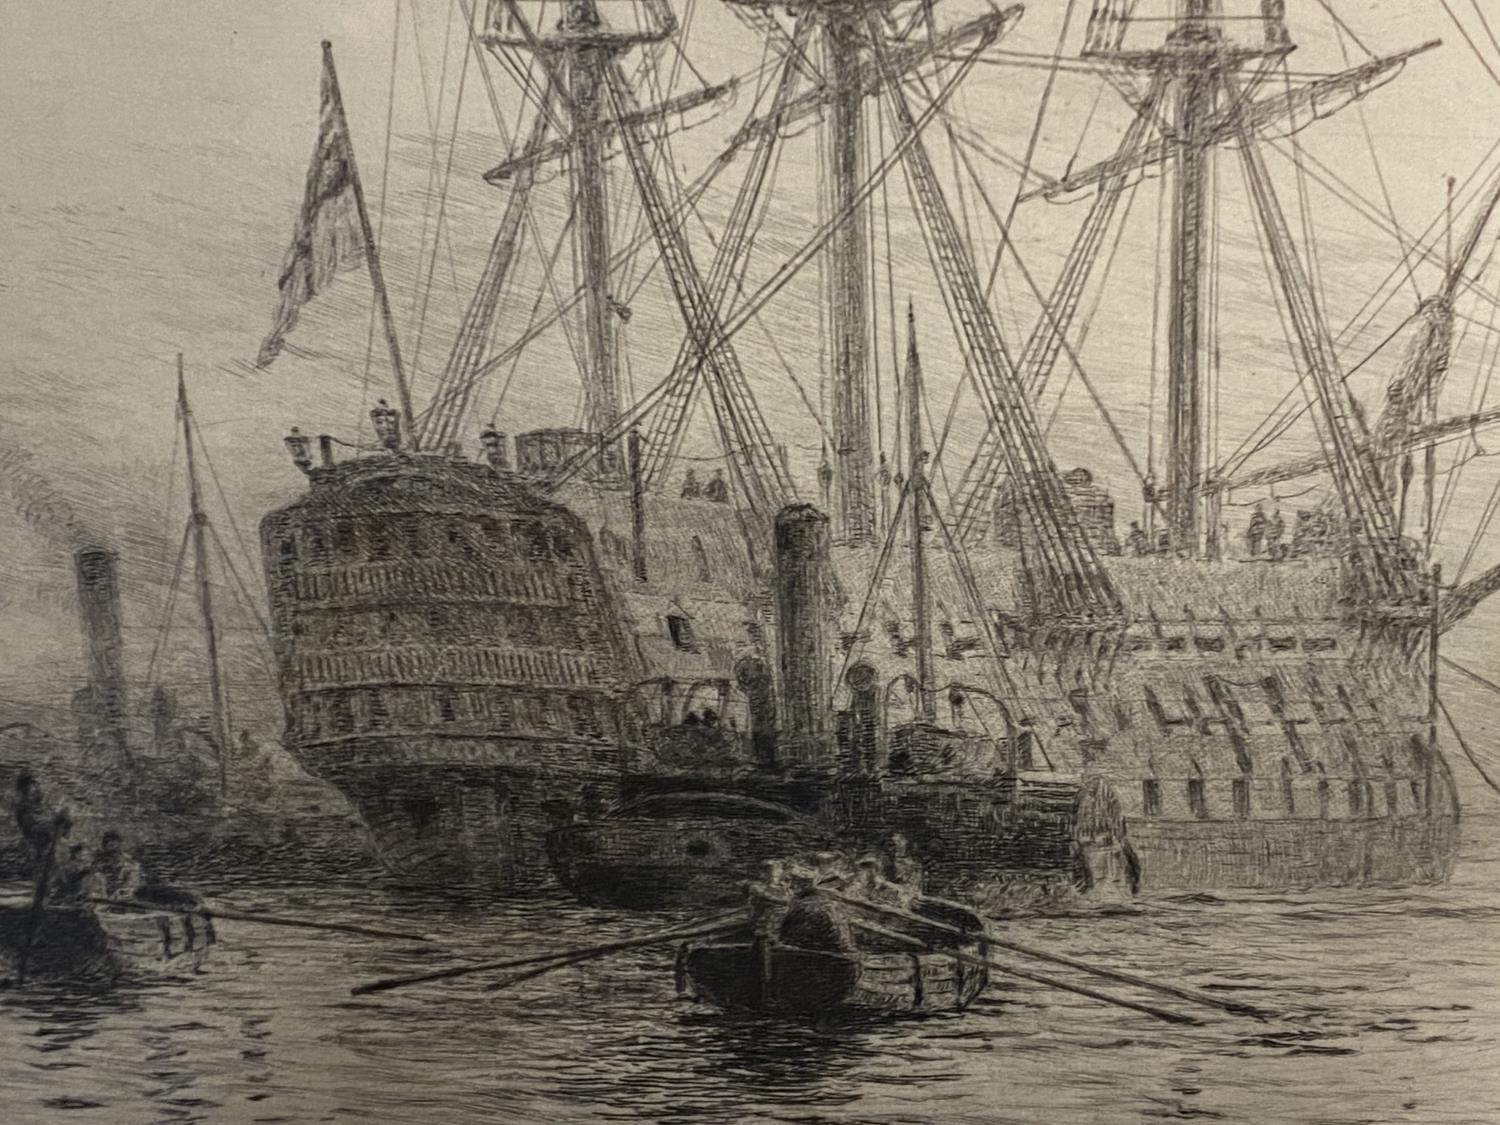 William Wylie, (1851-1931-), etching, Man of War with tugs in harbour, signed in pencil lower left - Image 6 of 12